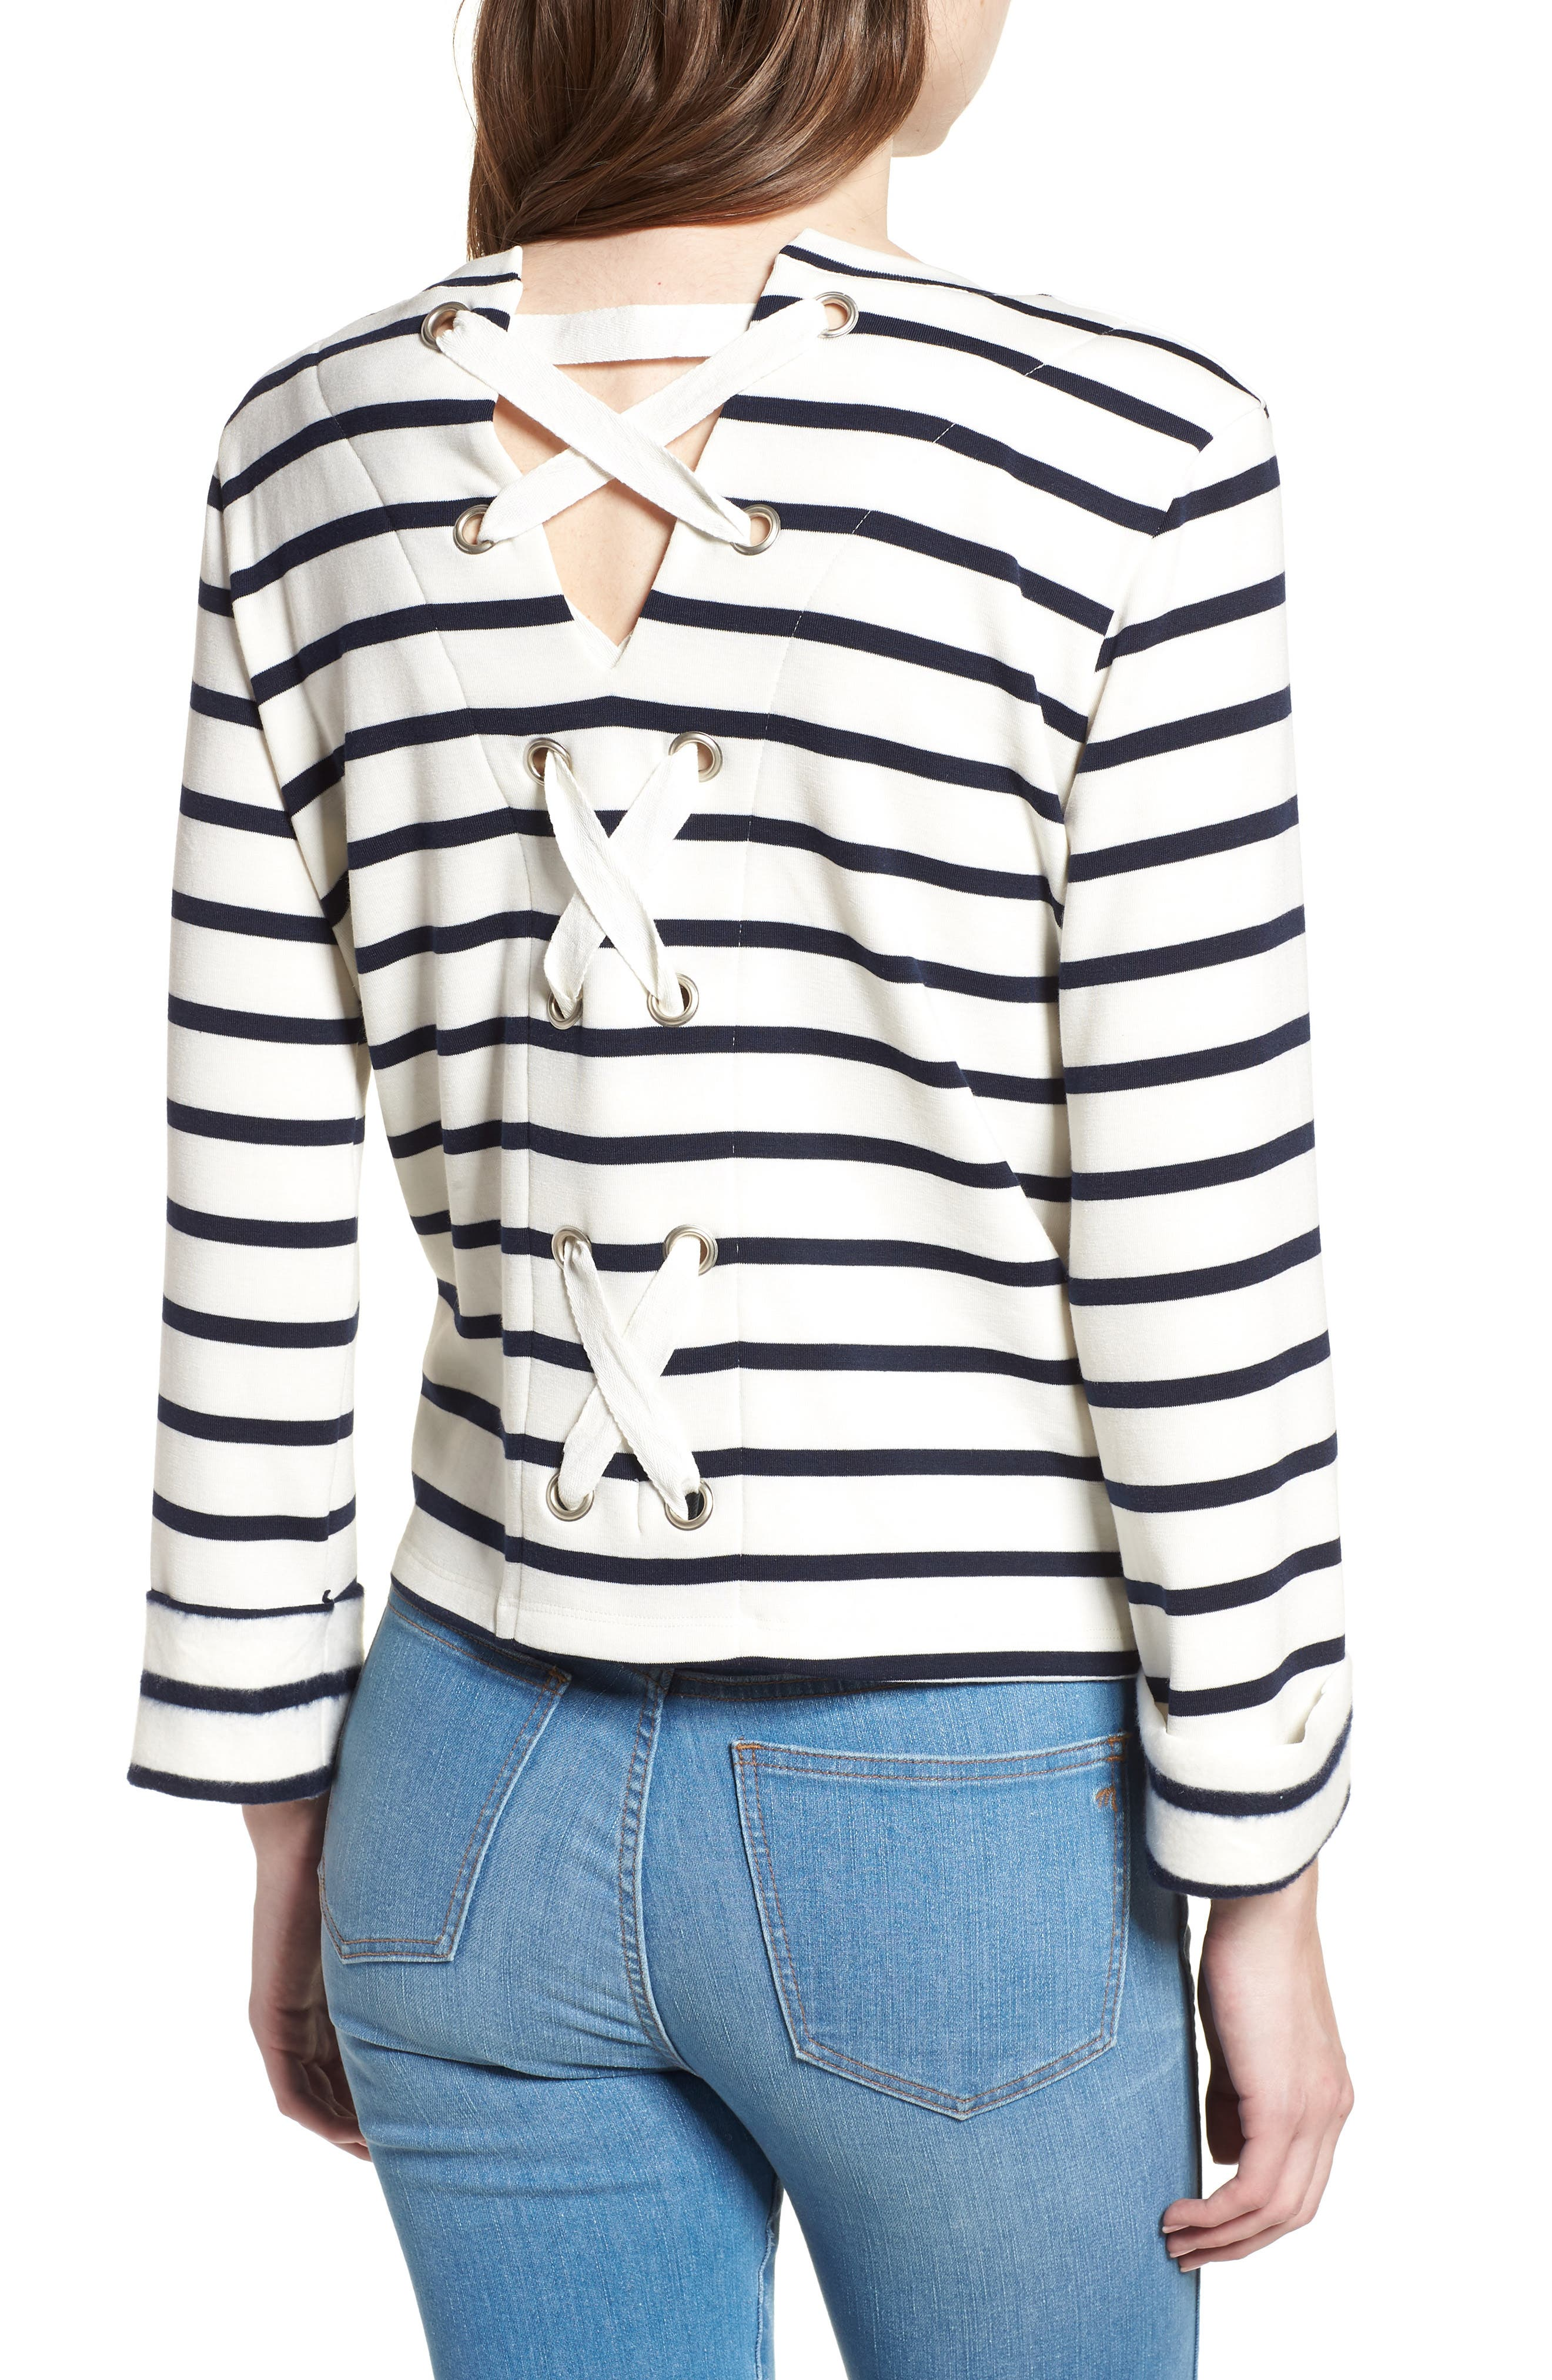 Bishop + Young Stripe Lace-Up Back Top,                             Alternate thumbnail 2, color,                             011